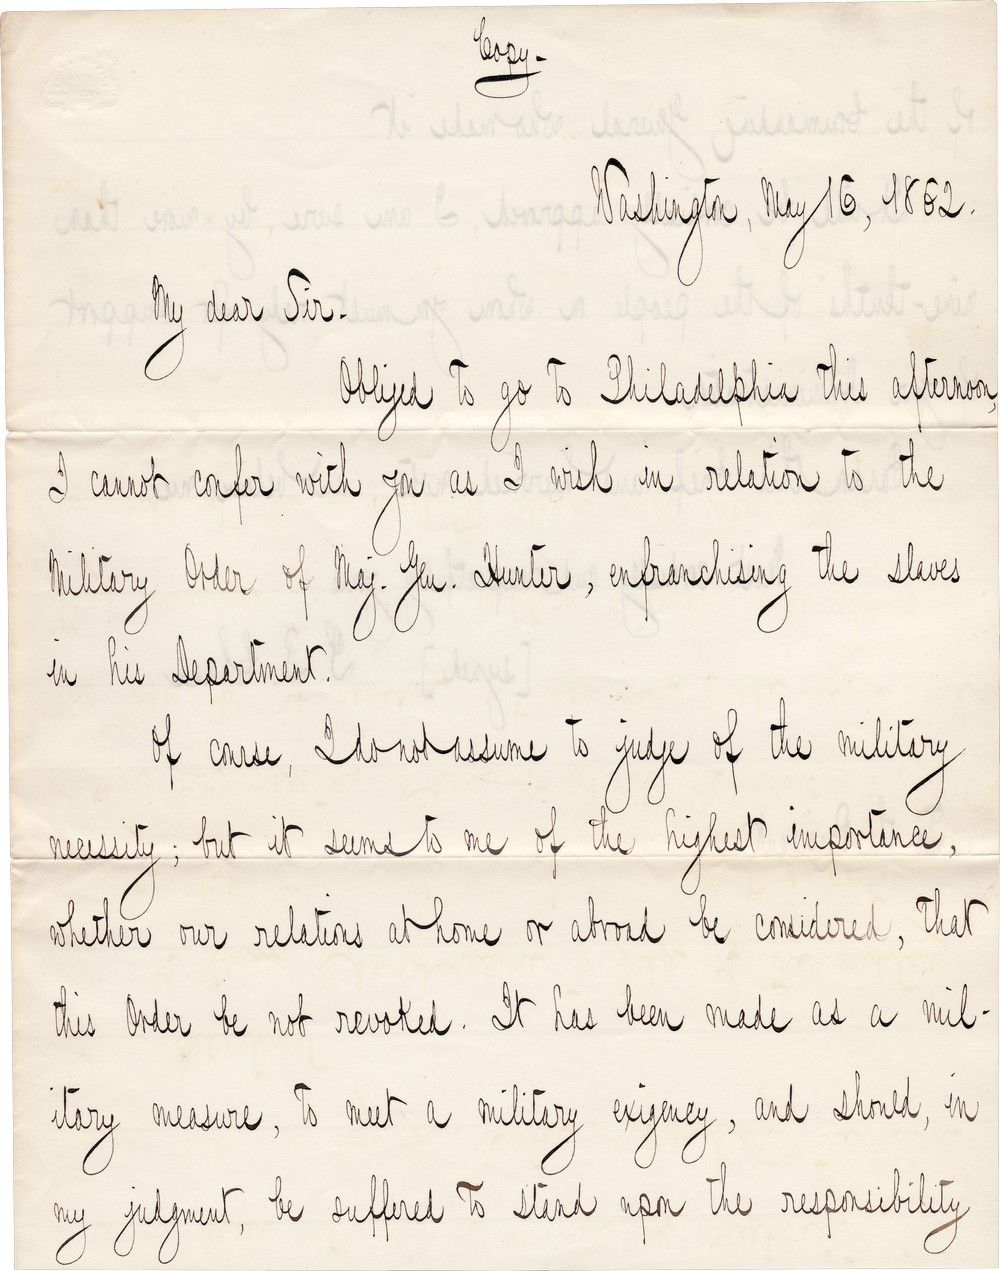 Contemporary Copy of Chase's Letter to Abraham Lincoln in Support of General Hunter's Emancipation Order